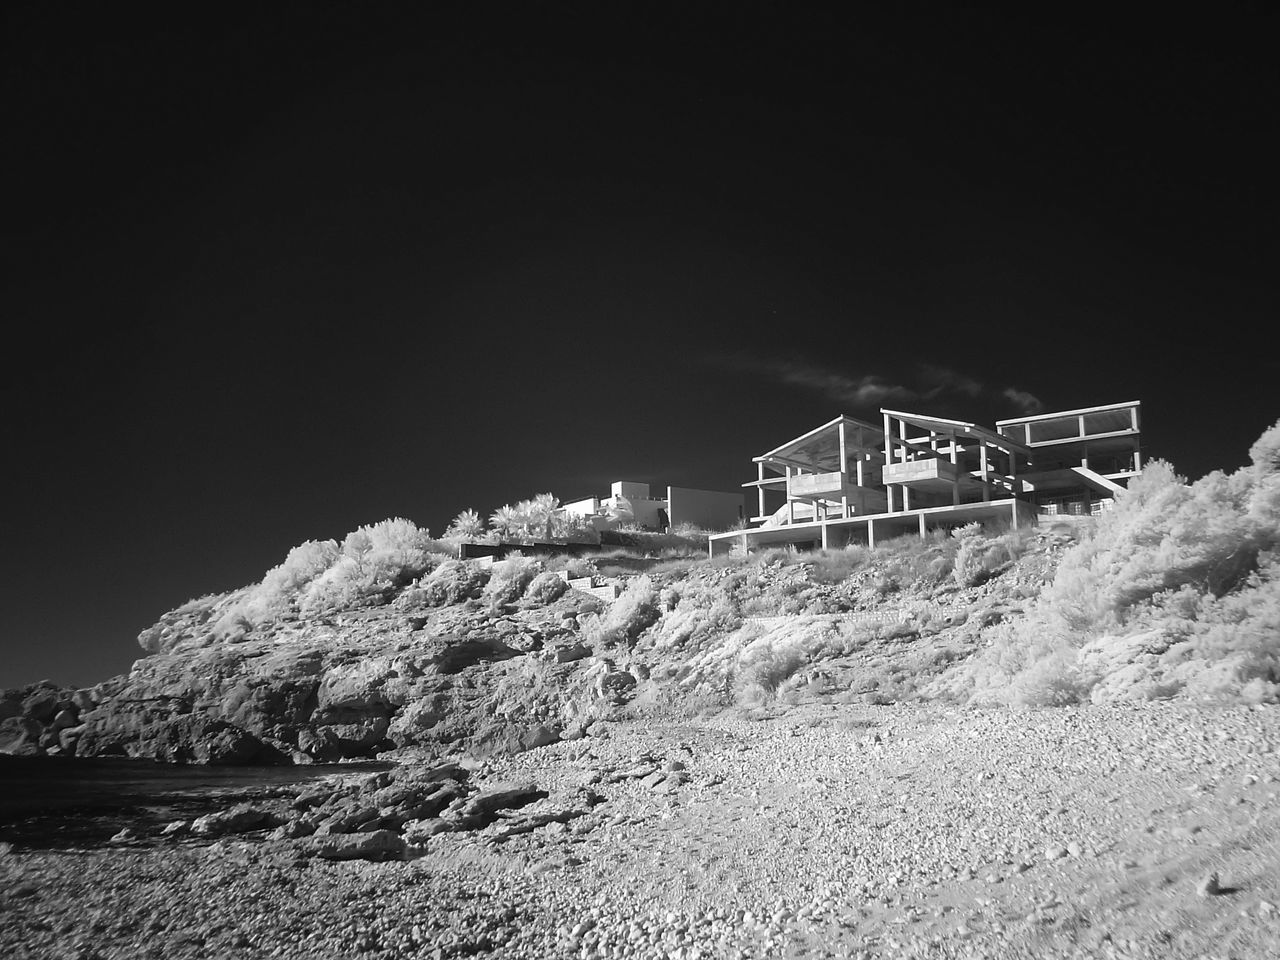 Beach Building A House On The Coast Day Infrared Photography No People Outdoors Sky